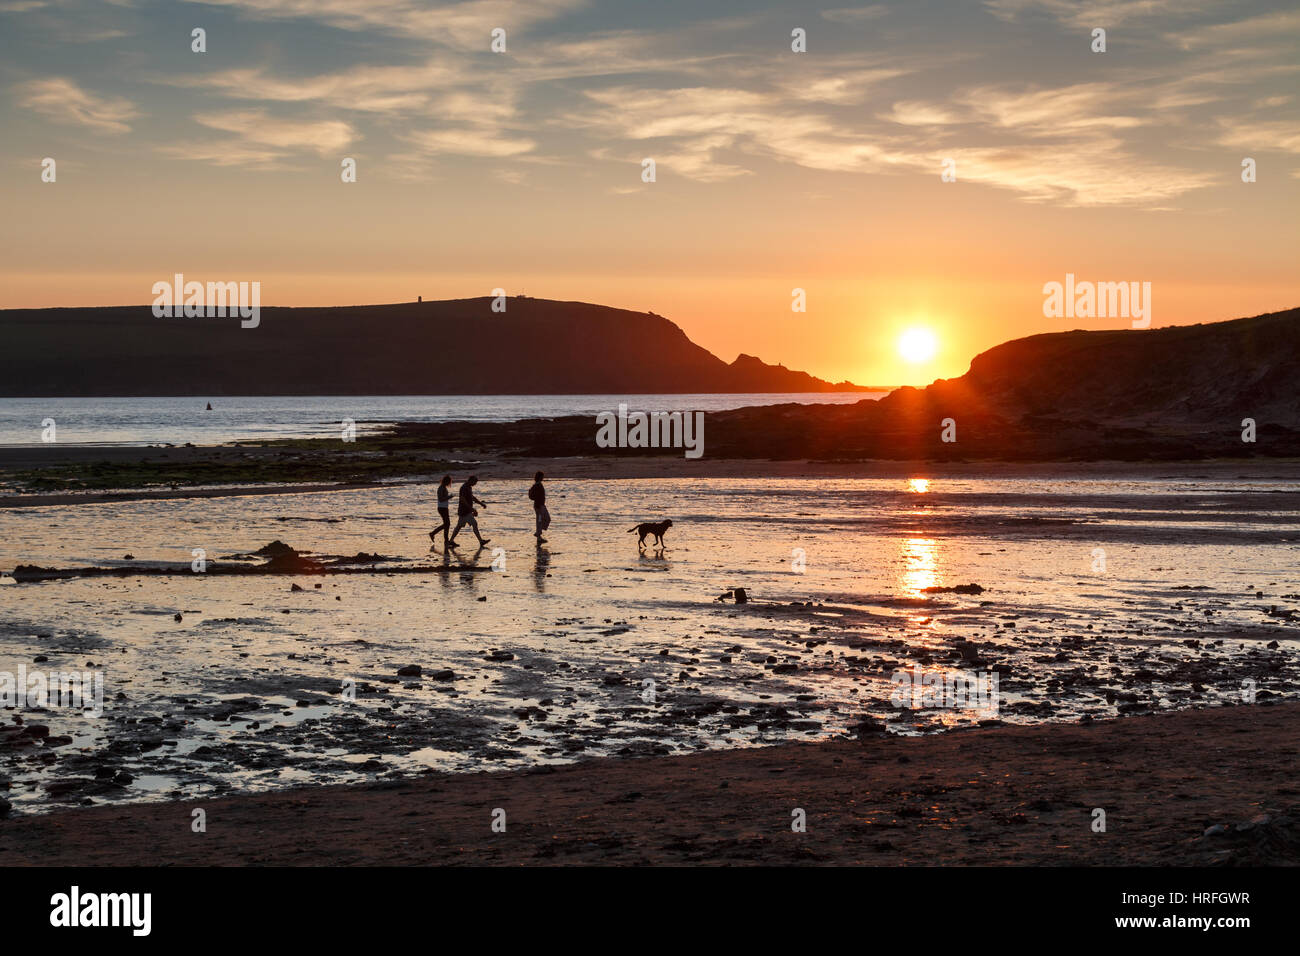 A family with dog in silhouette walking on a beach at Daymer Bay in Cornwall at sunset.  The setting sun reflects Stock Photo